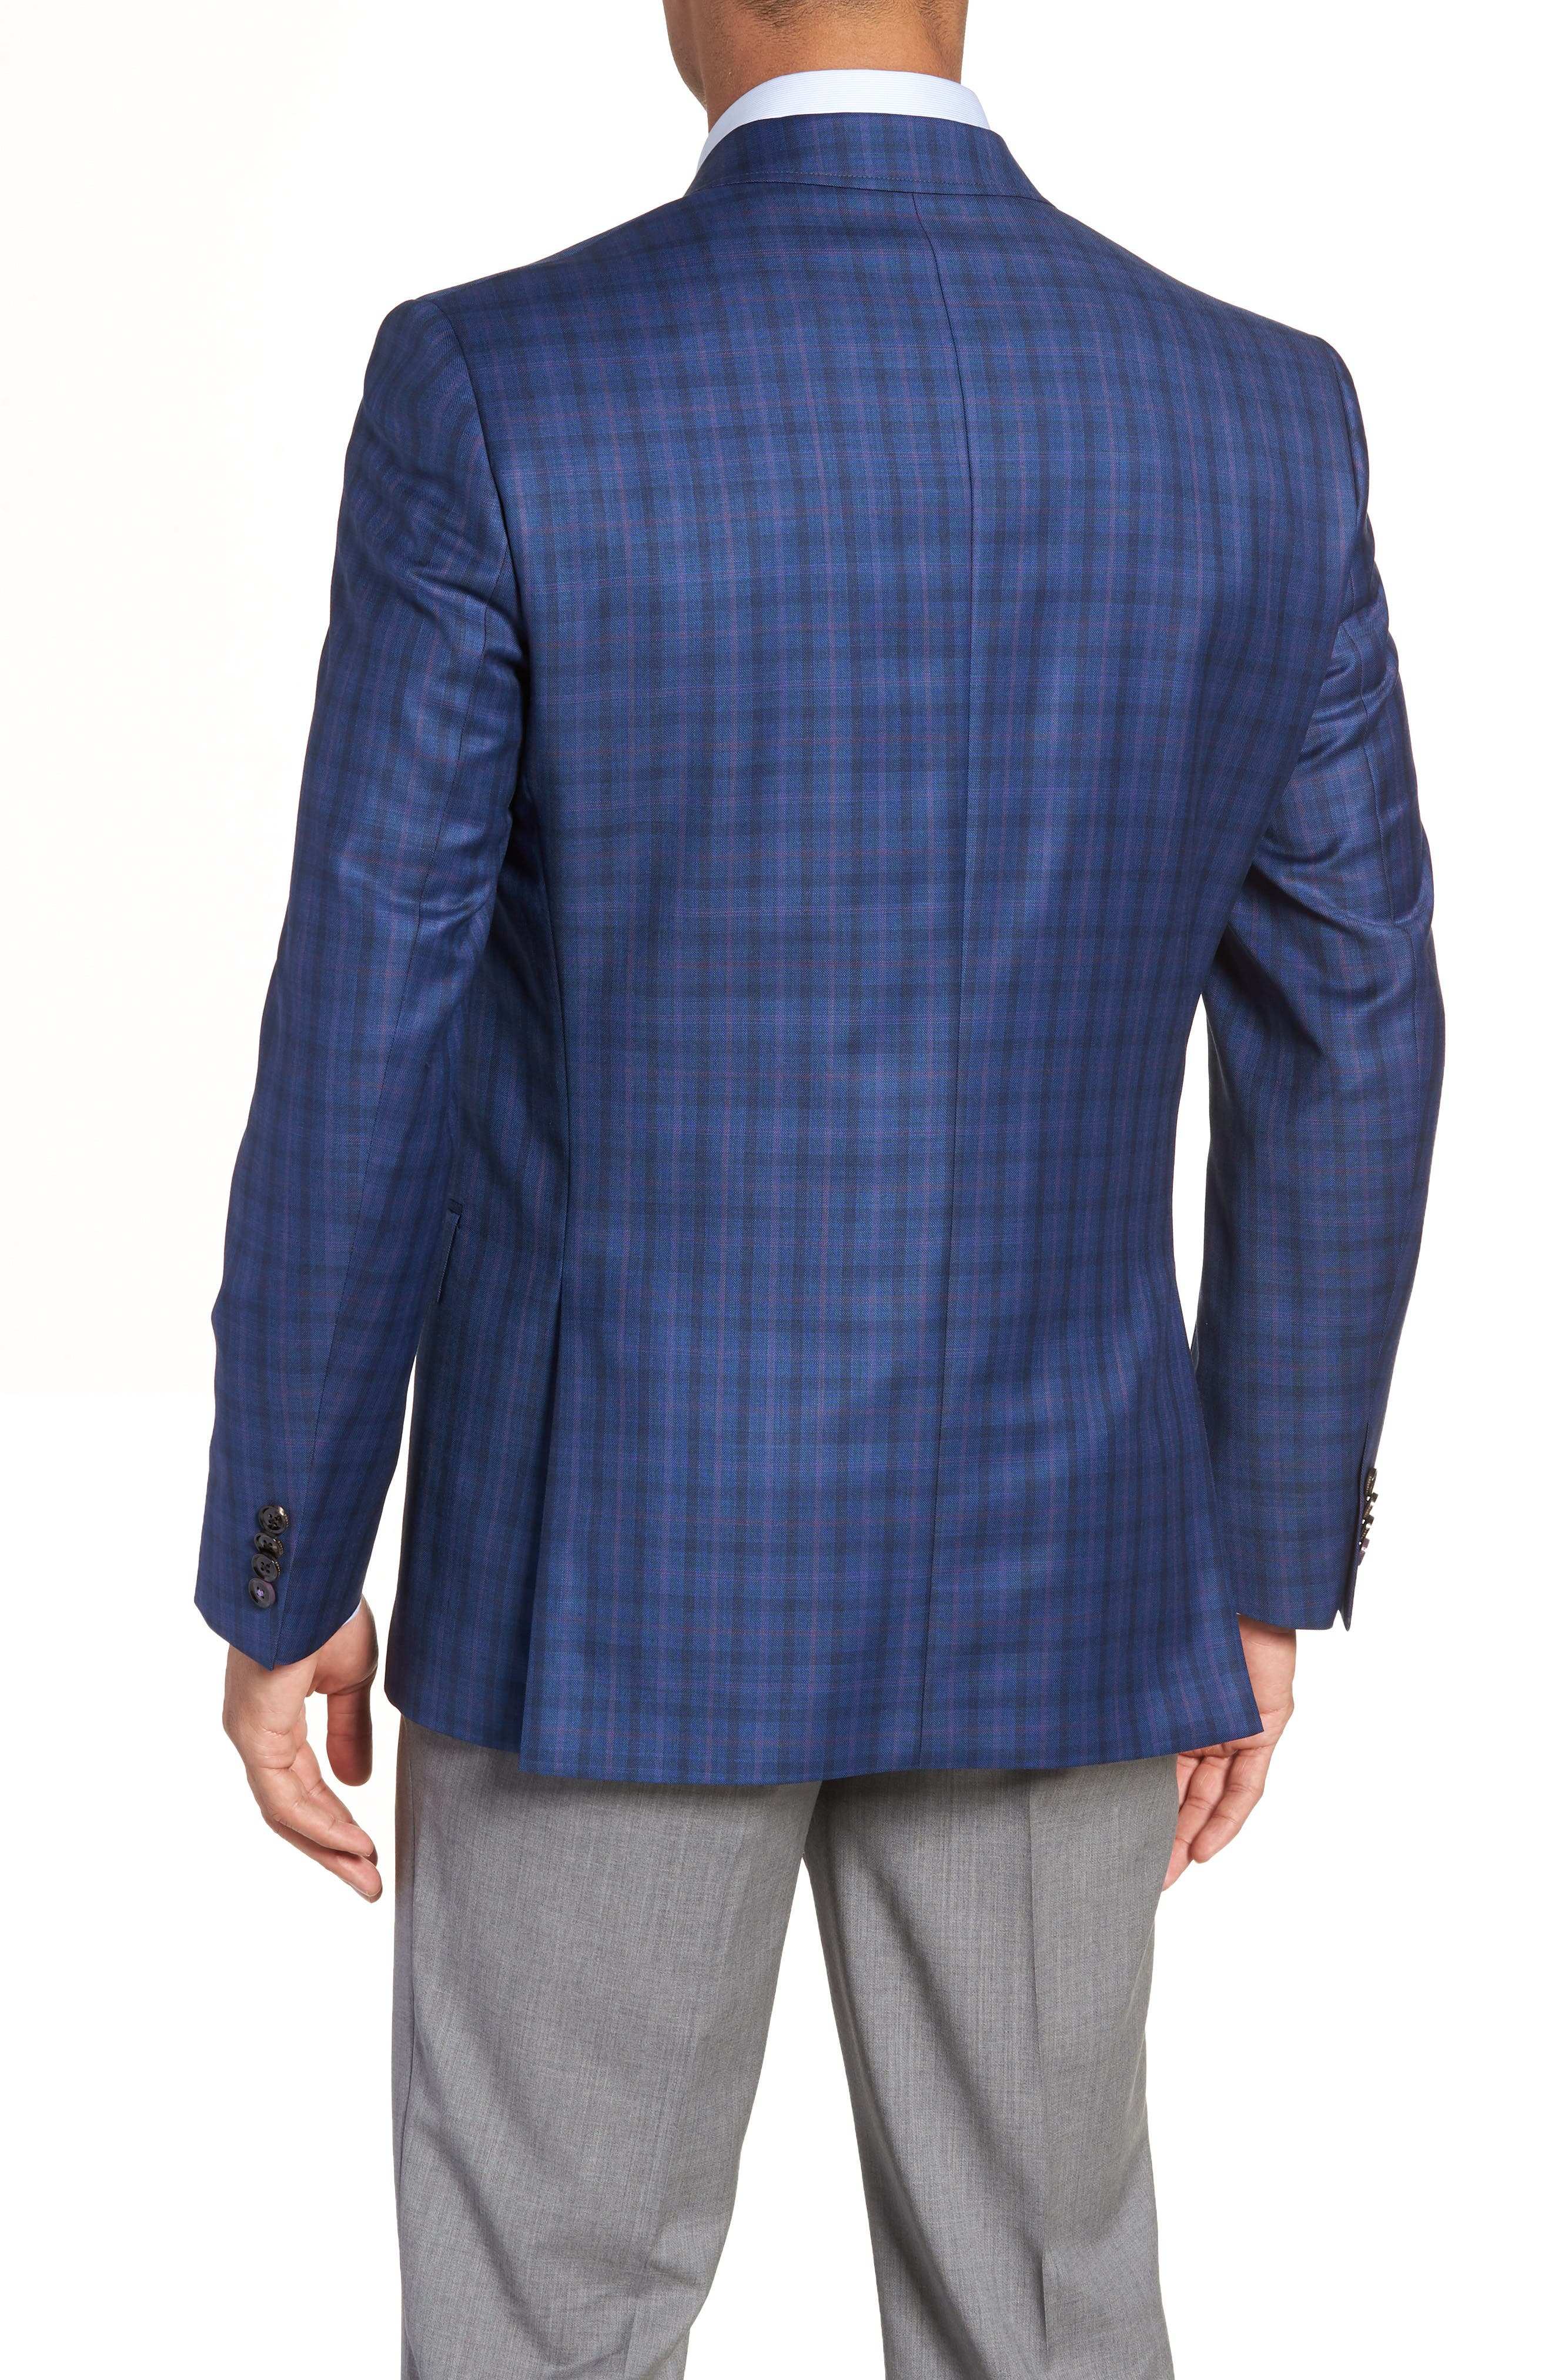 Jay Trim Fit Windowpane Wool Sport Coat,                             Alternate thumbnail 2, color,                             400